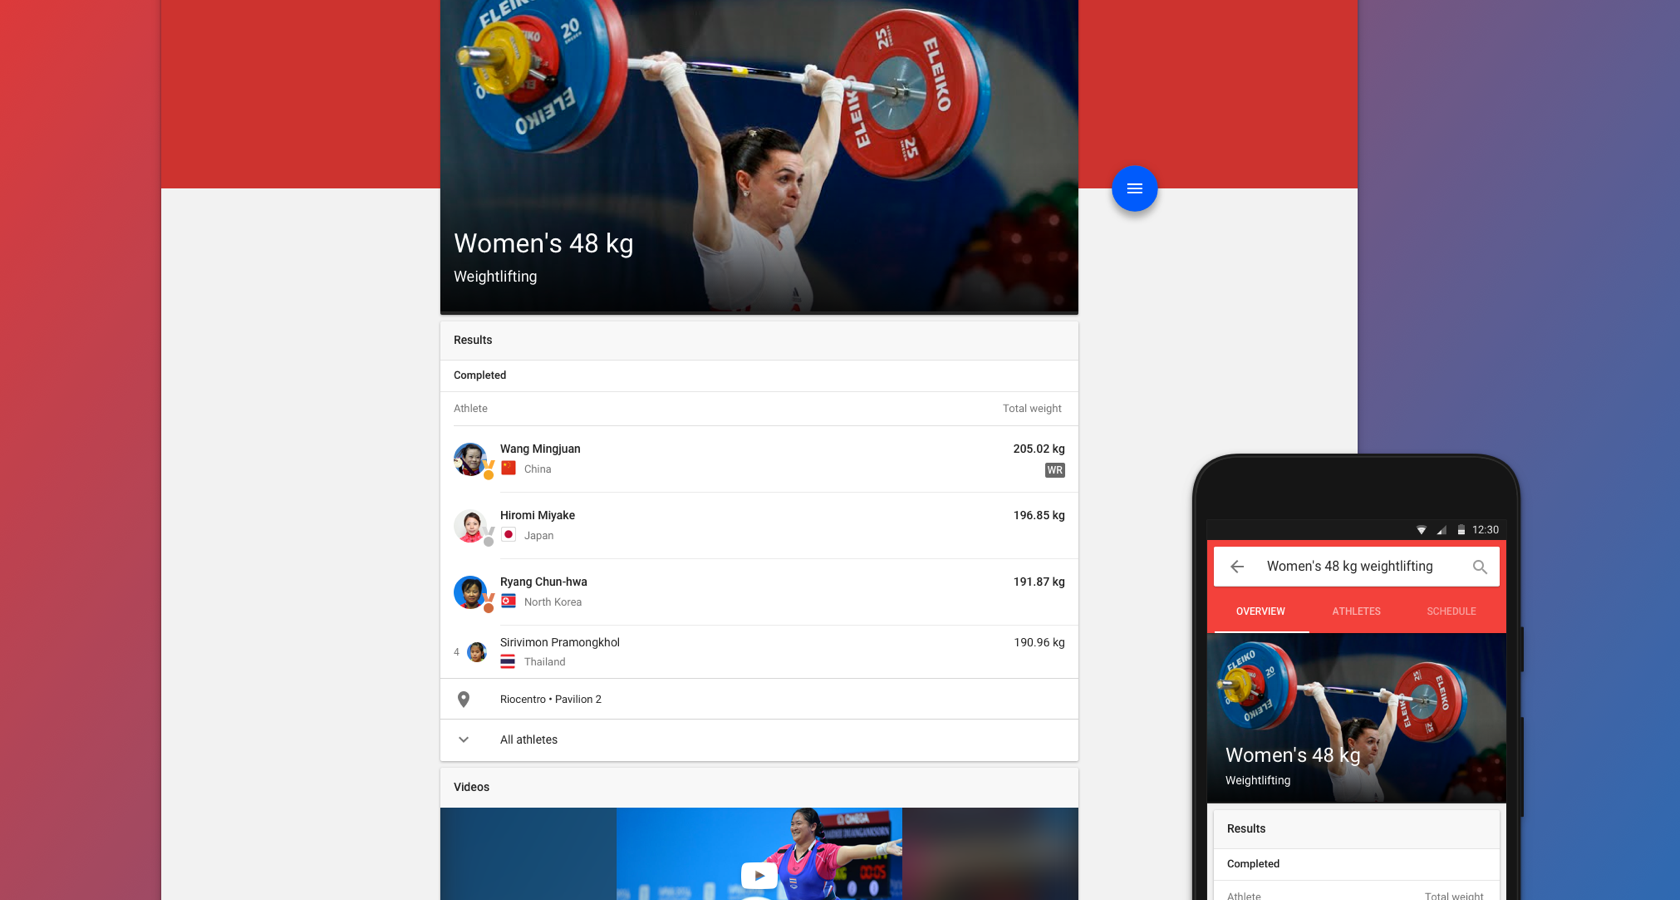 Material Design is a structured UI design system